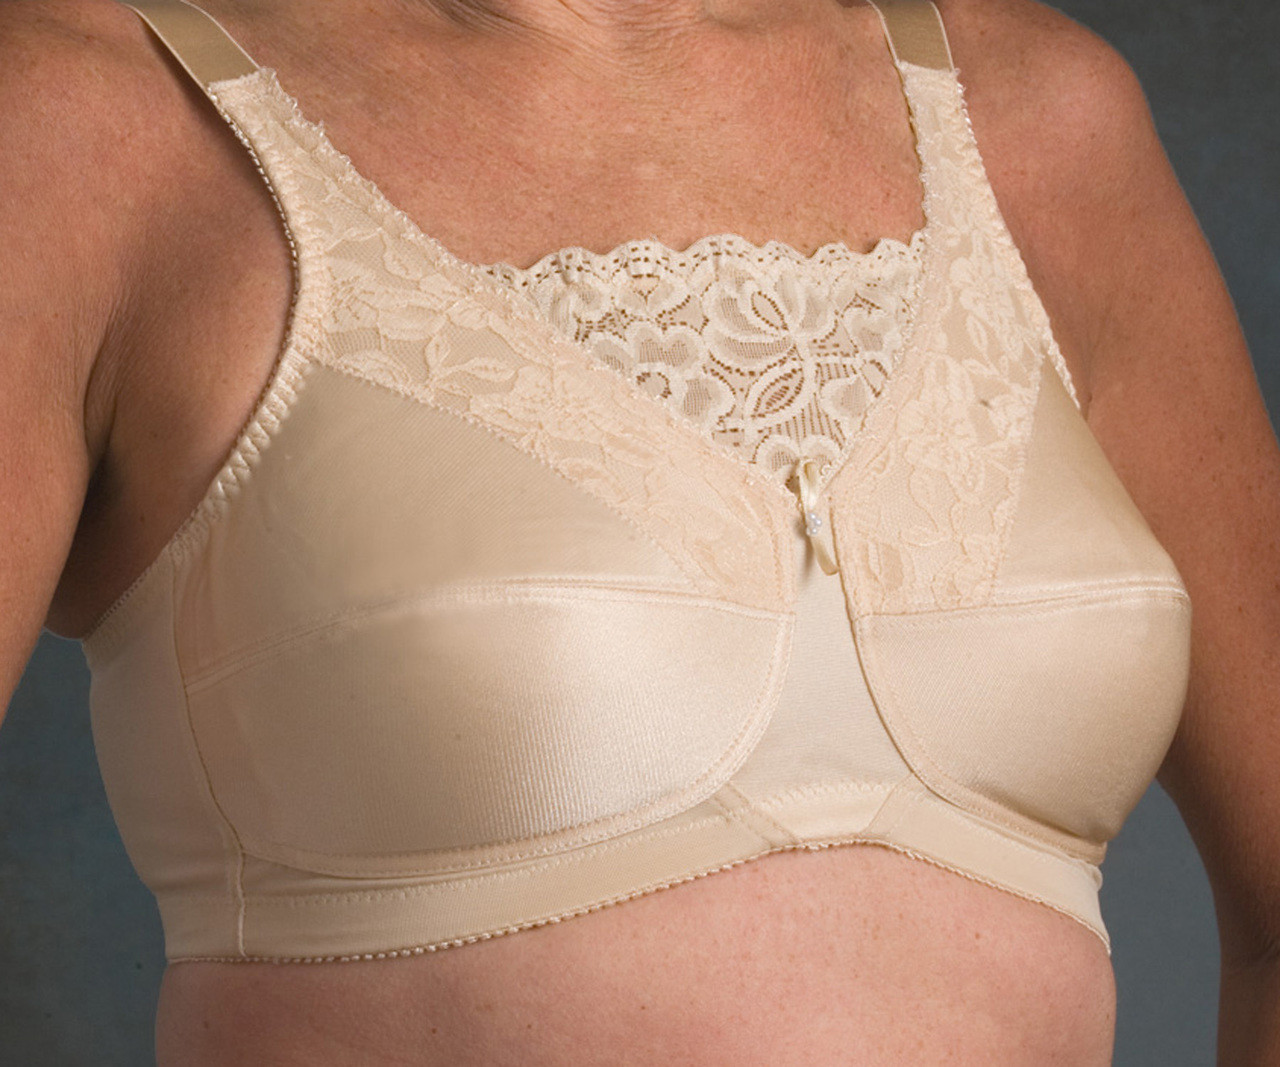 6aefec93c2563 Nearly Me 660 Lace Cami Mastectomy Bra - MastectomyShop.com